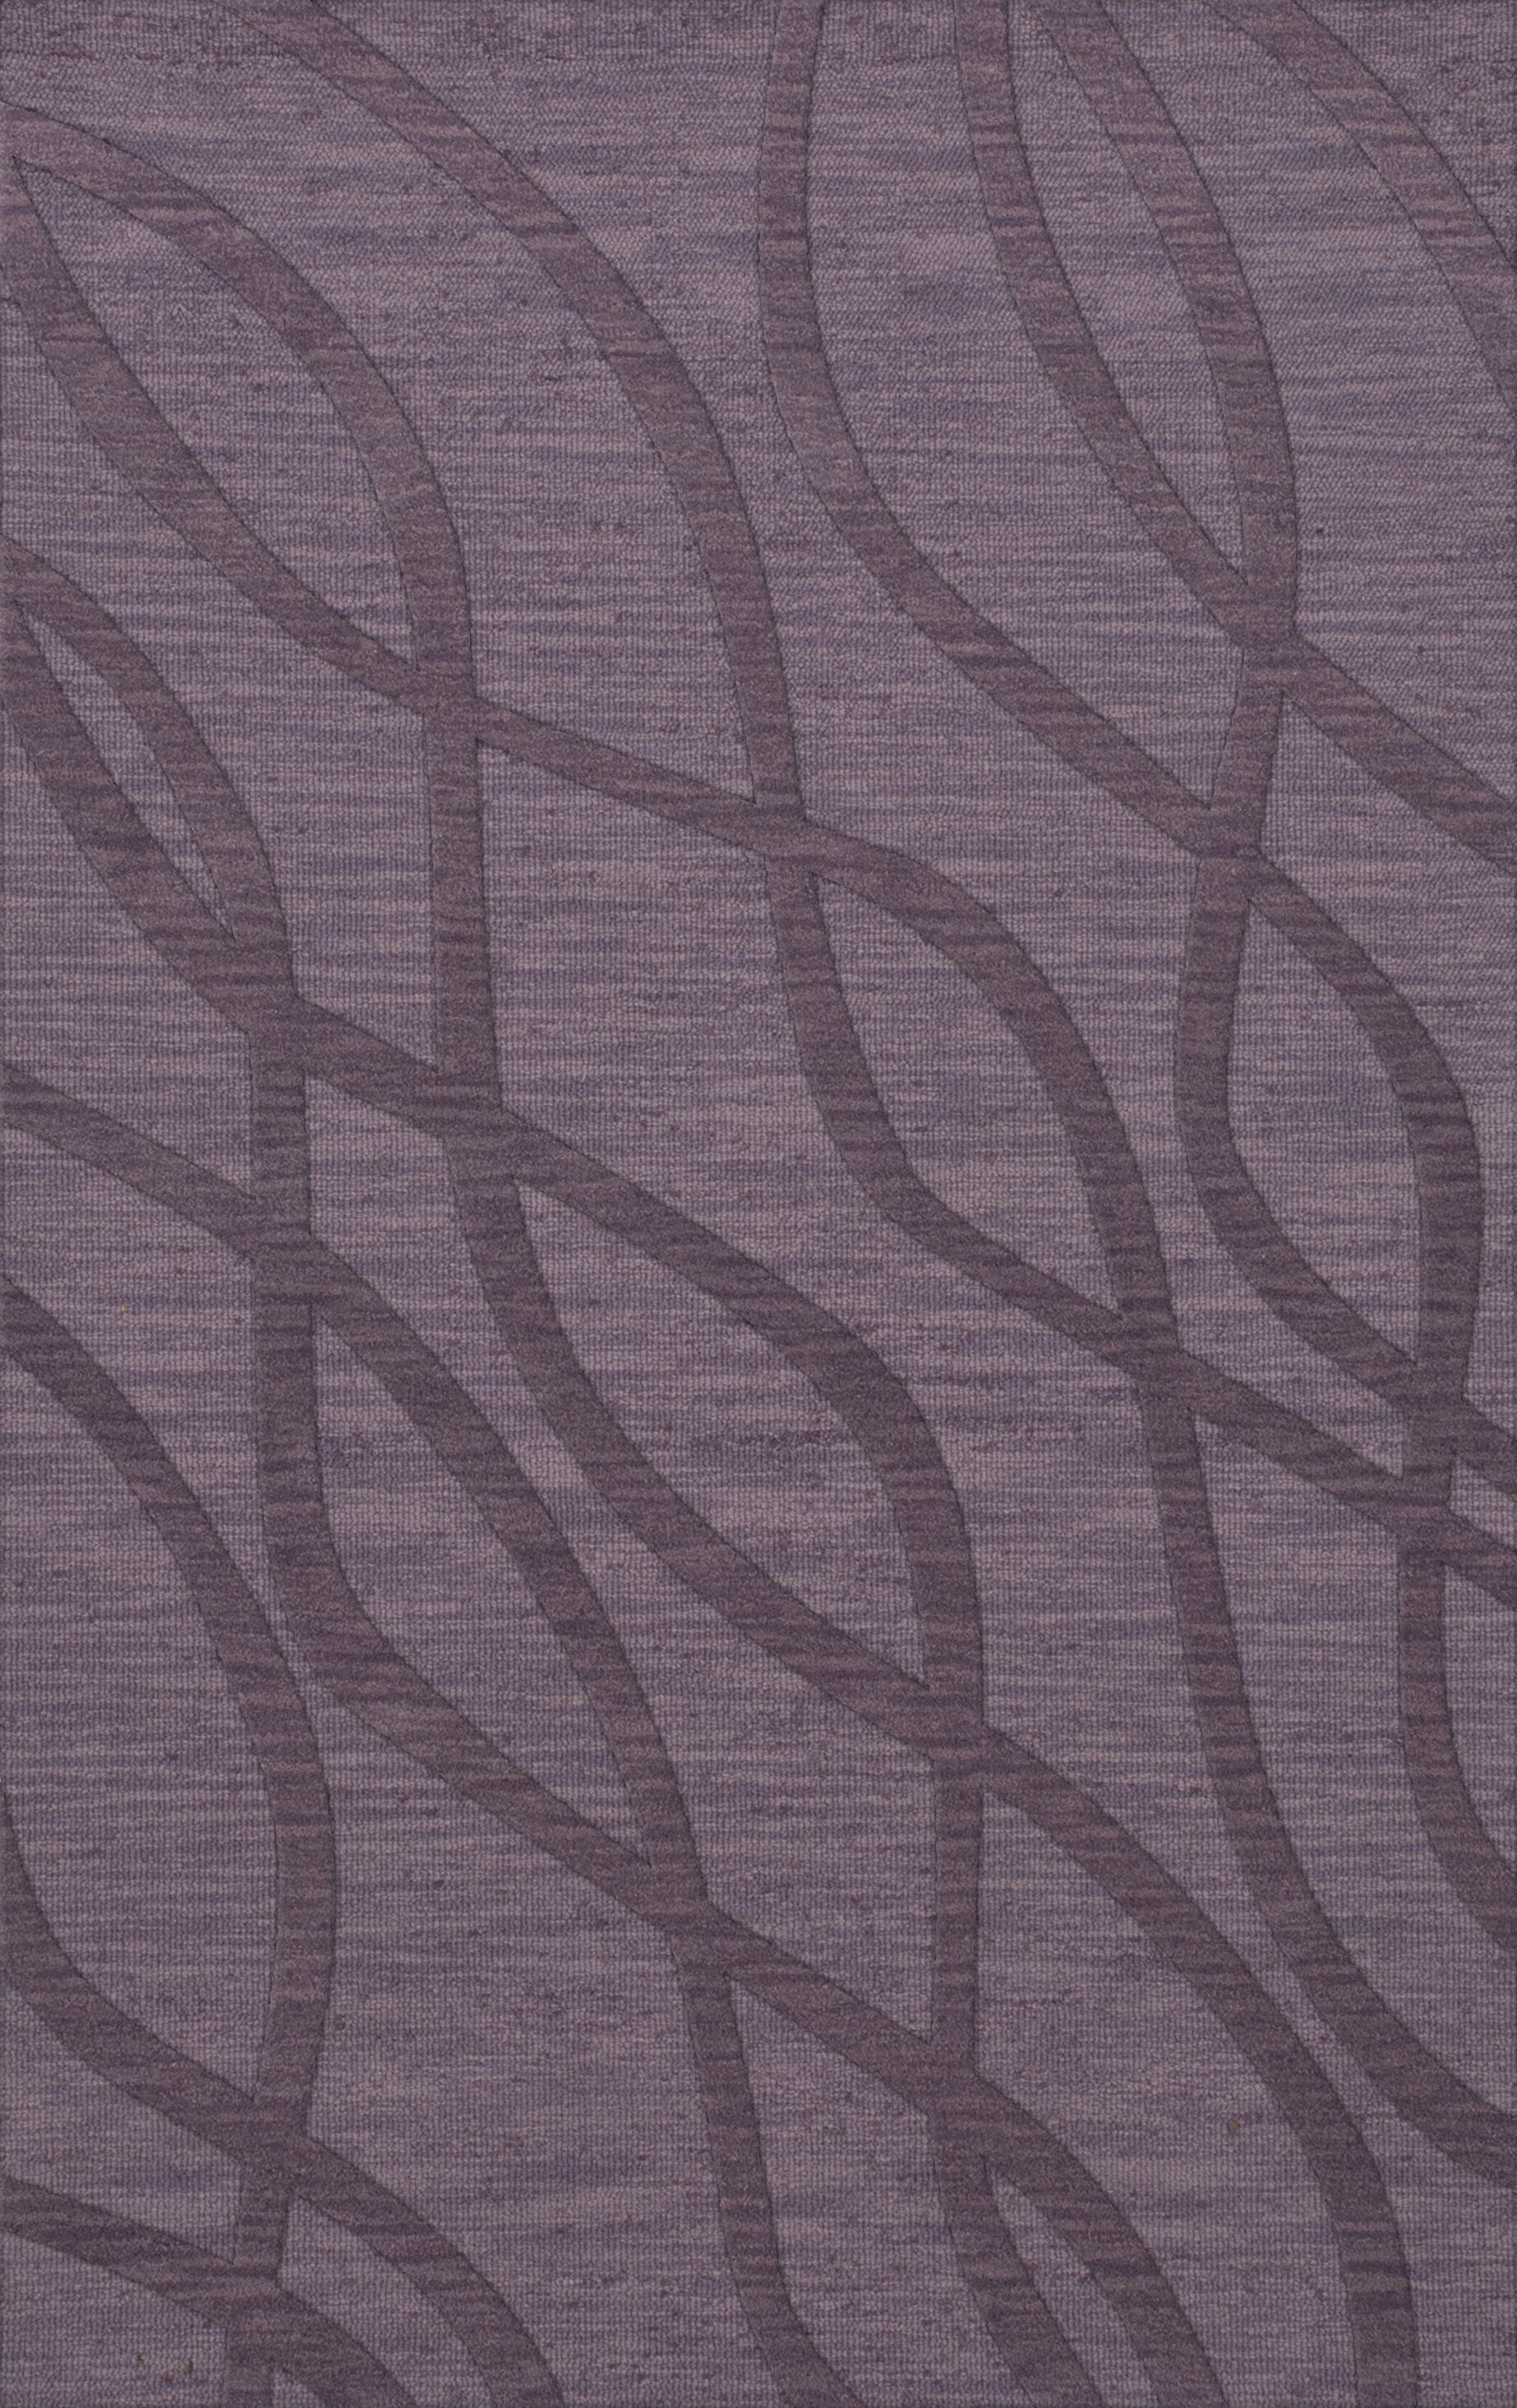 Dover Tufted Wool Viola Area Rug Rug Size: Rectangle 4' x 6'